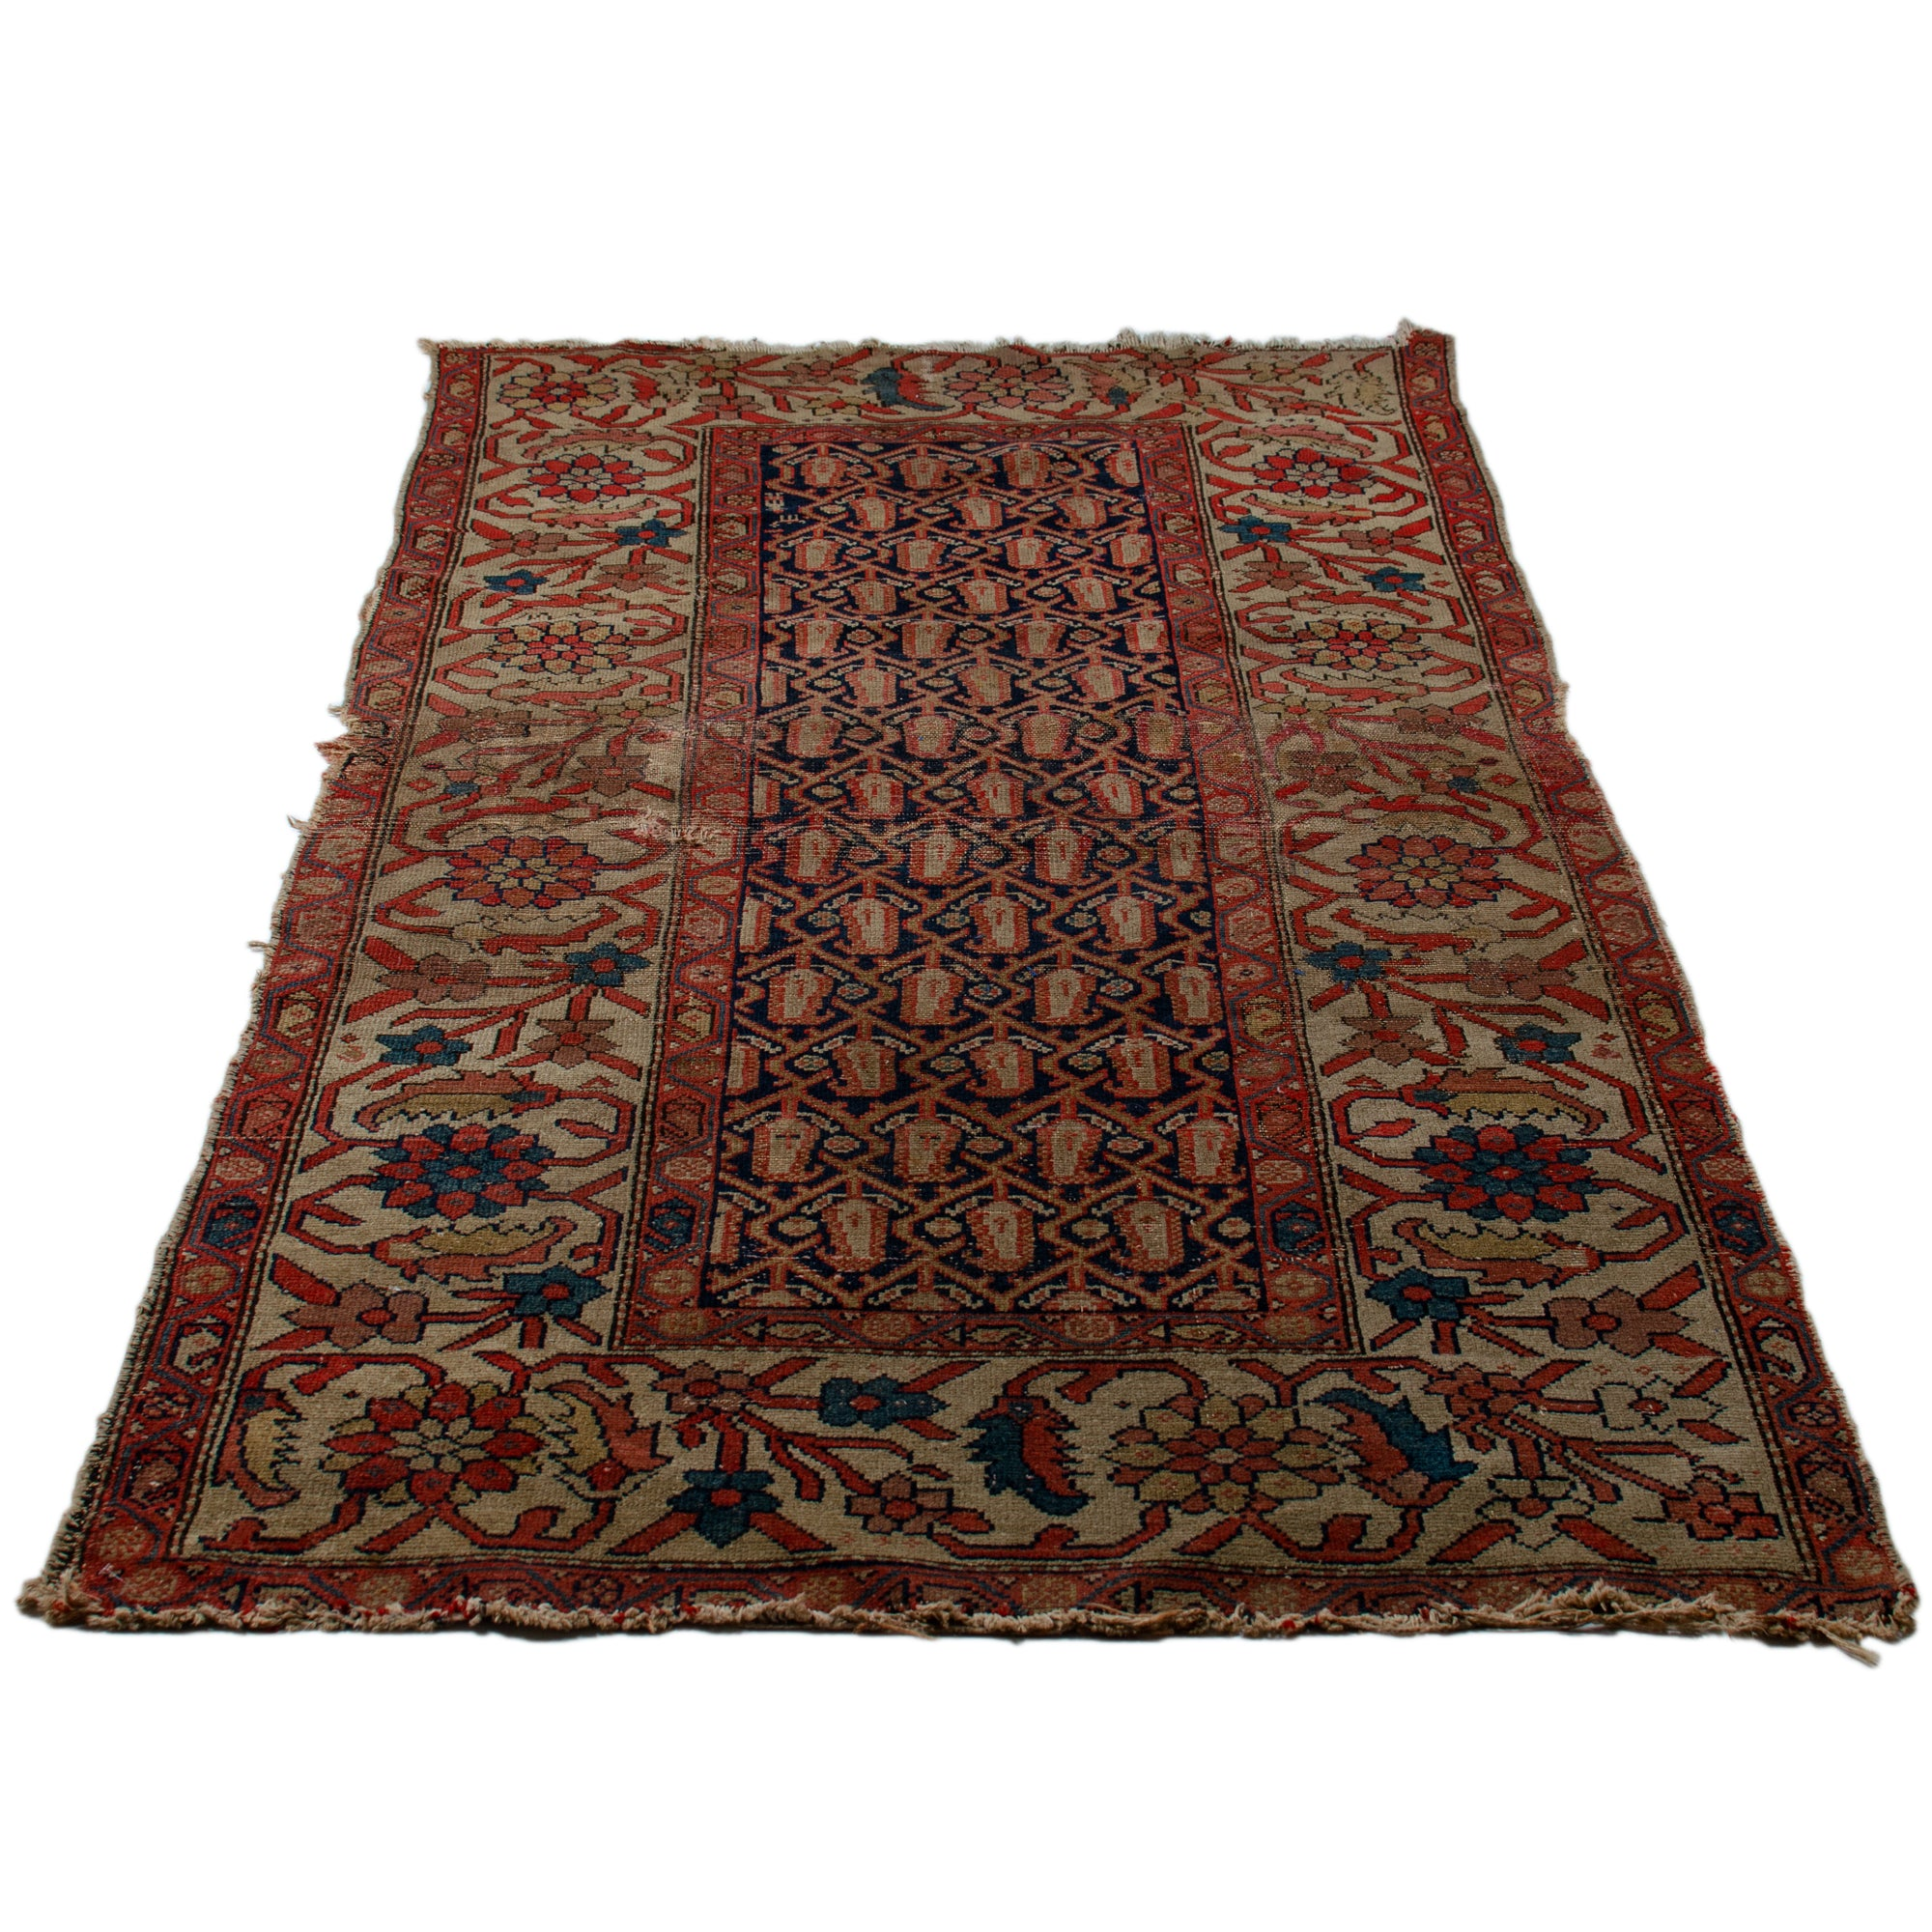 Tribal Northwest Persian Rug, 19th Century